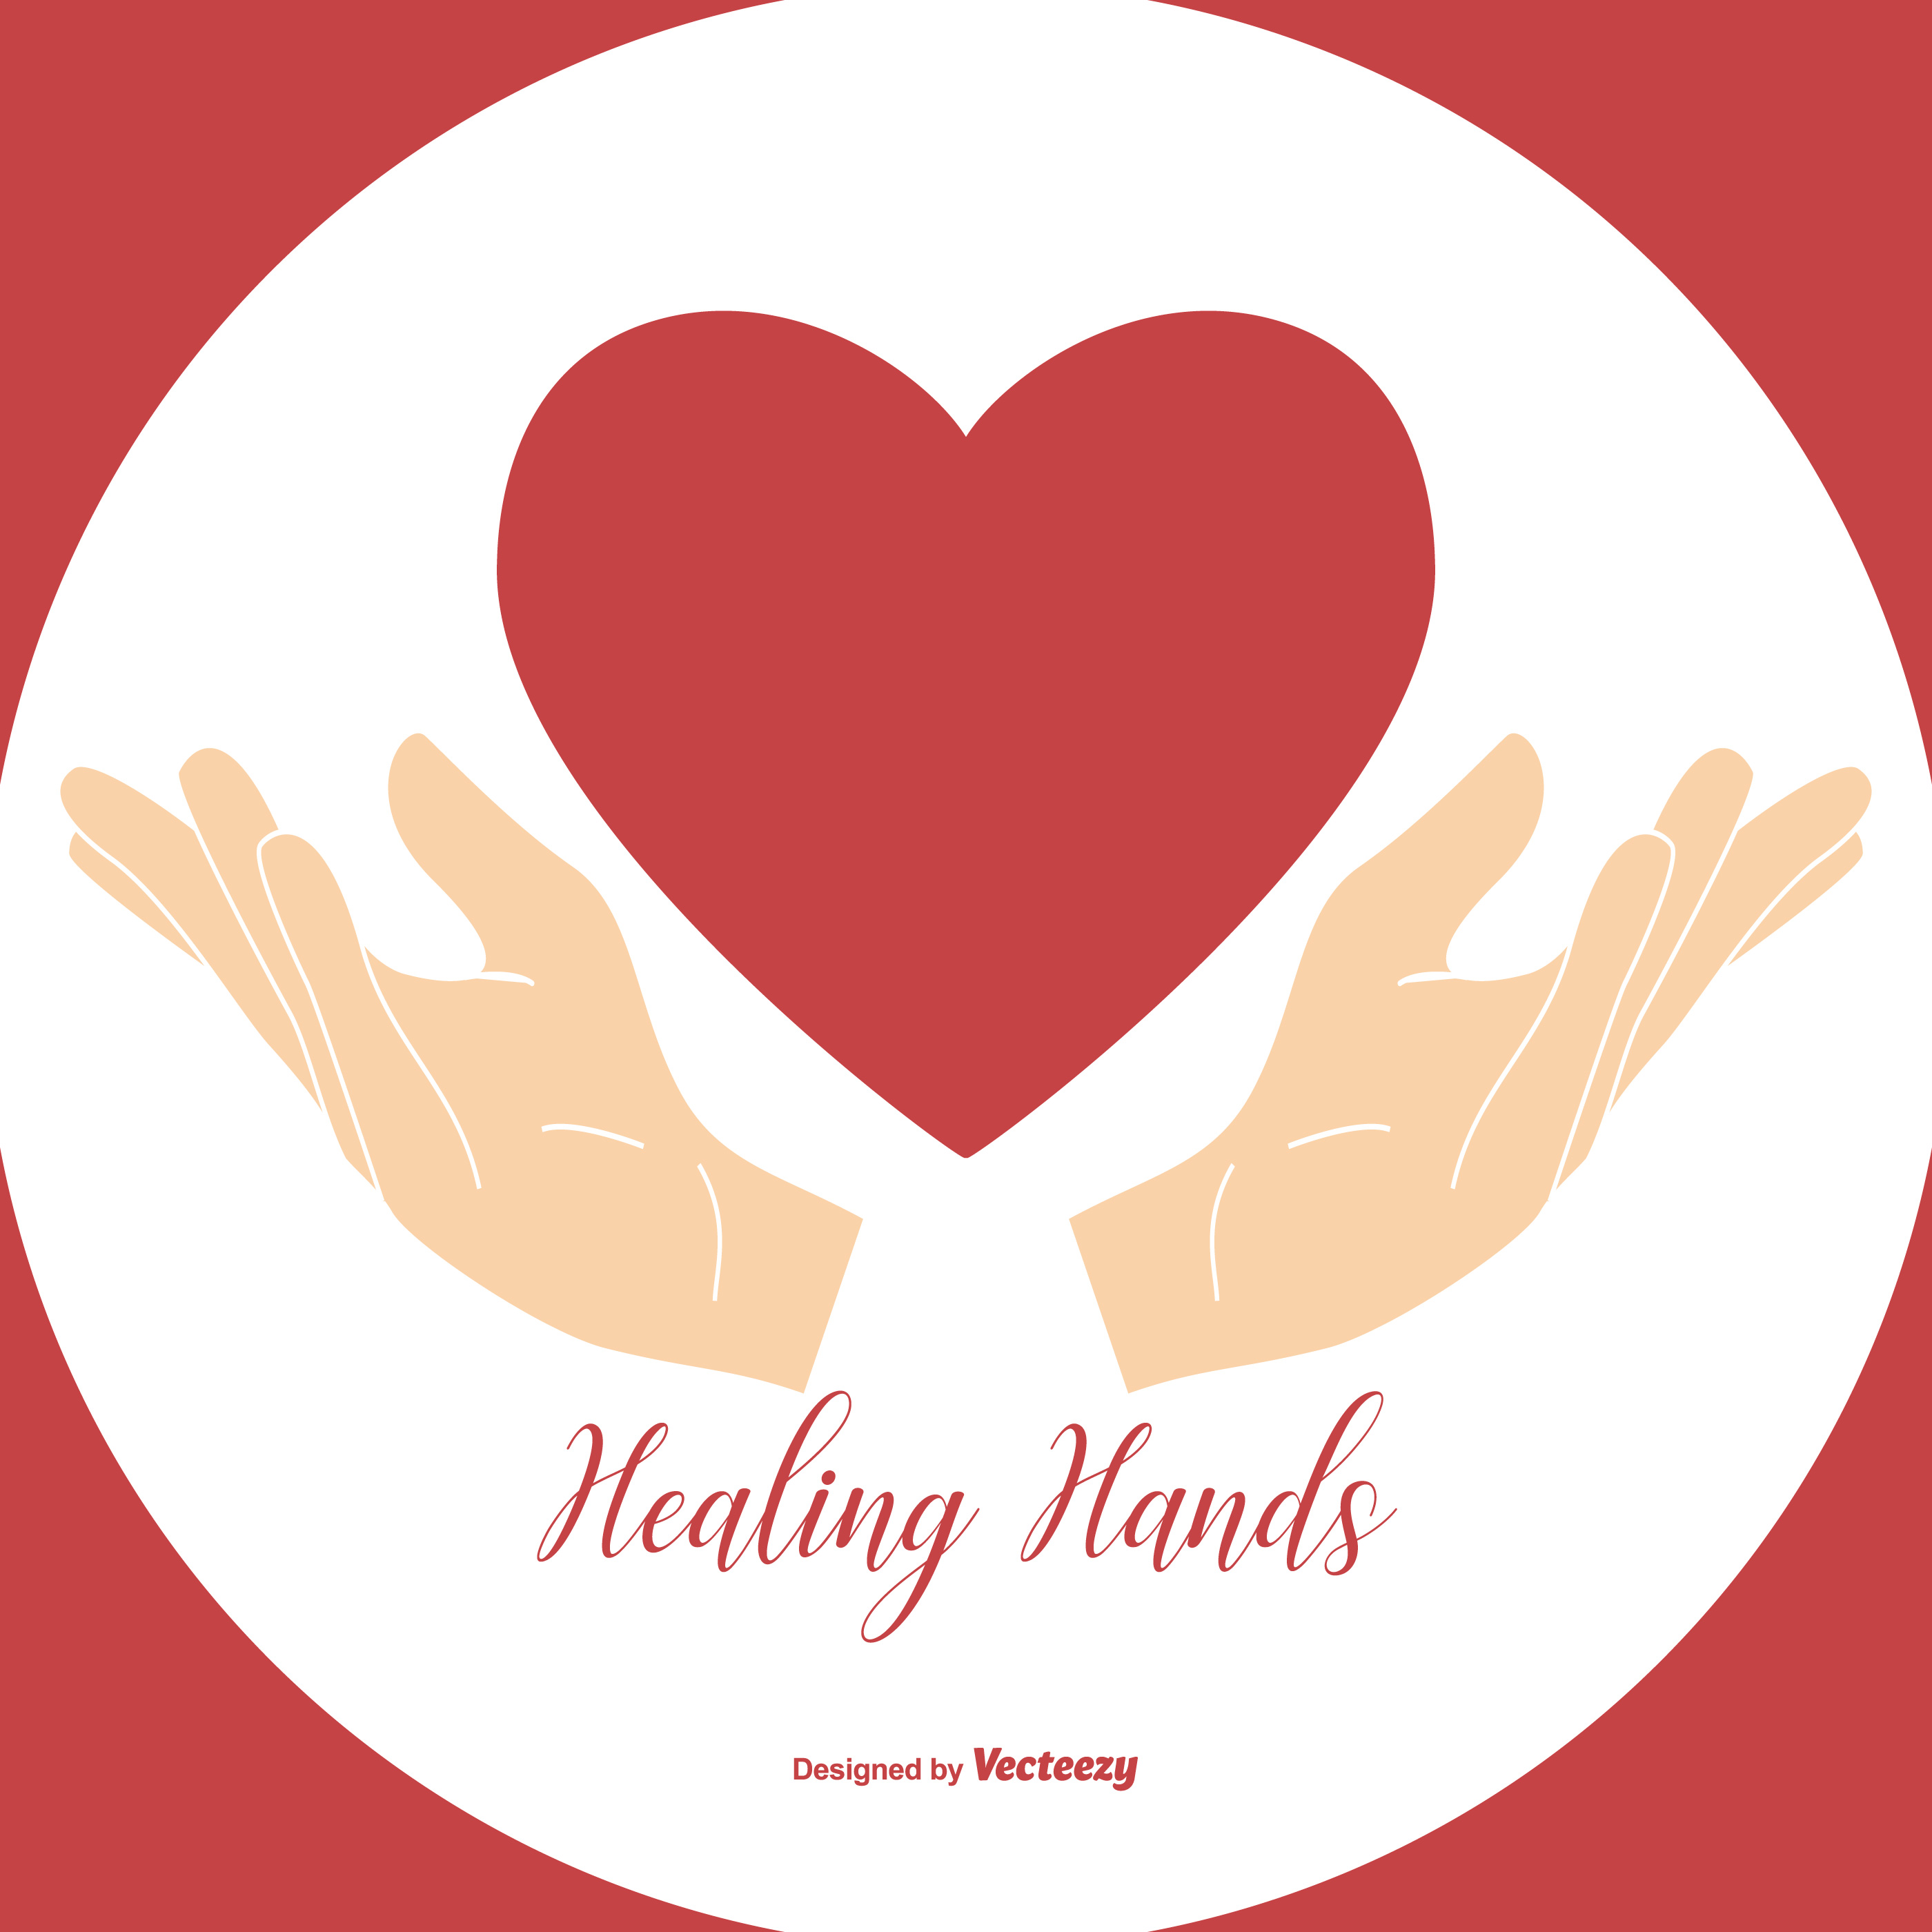 Healing hands holding heart illustration download free vector art healing hands holding heart illustration download free vector art stock graphics images buycottarizona Image collections